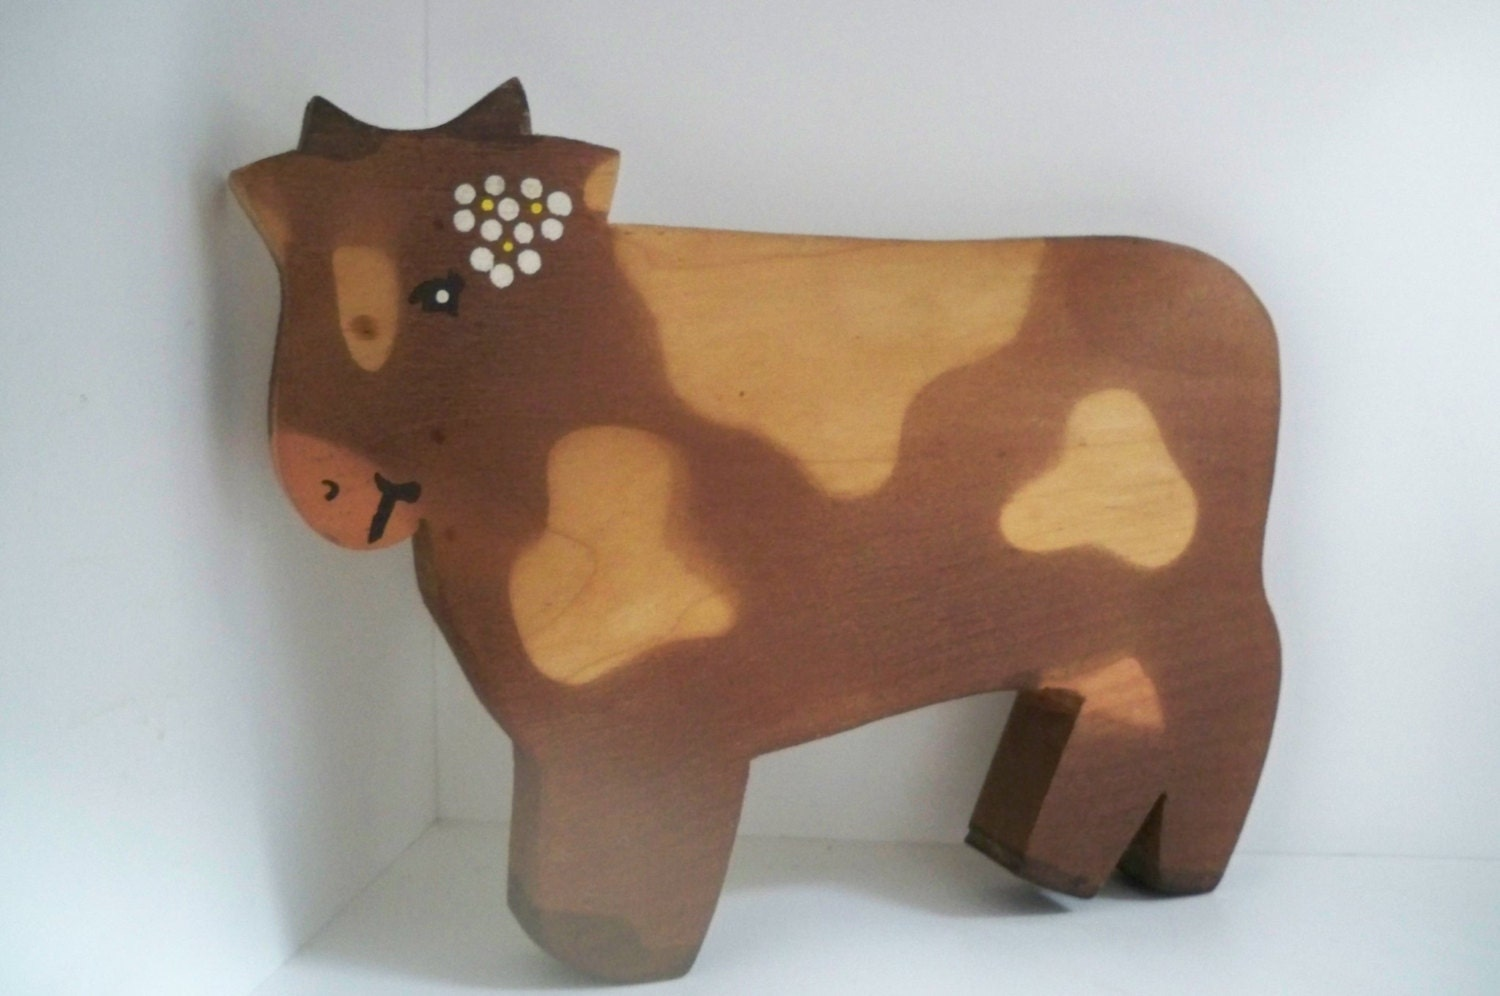 Vintage Home Decor Wall Hanging Kitchen Wood Cow Handmade